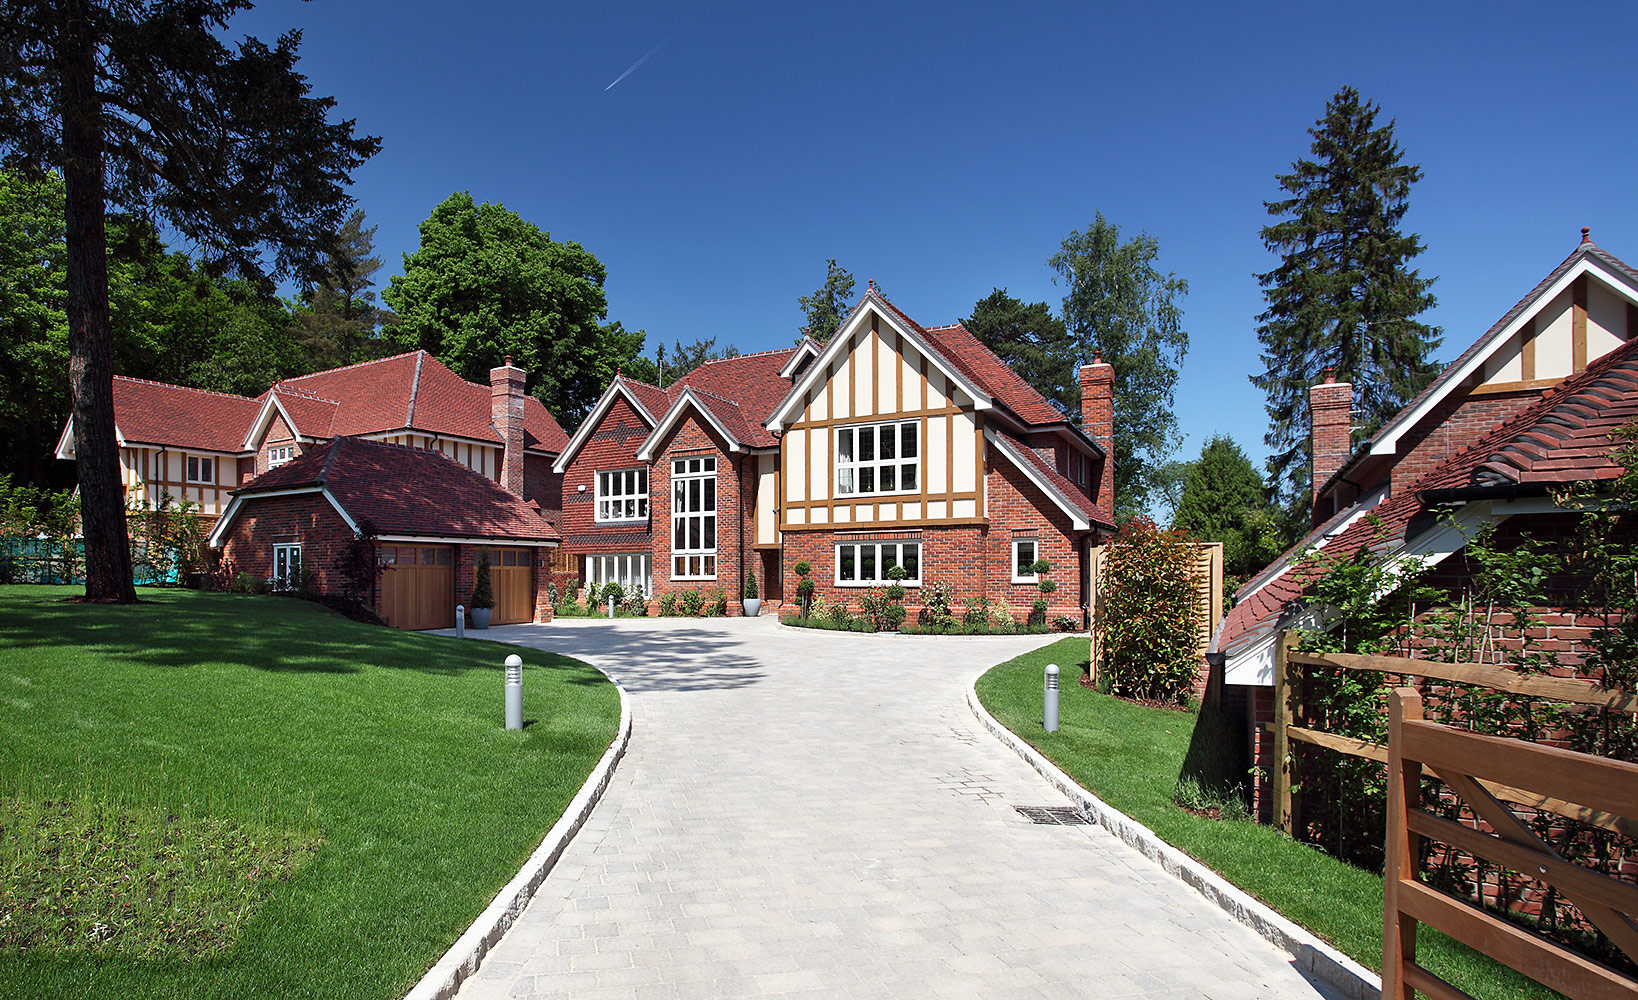 Rotherfield Garth by Spitfire Homes